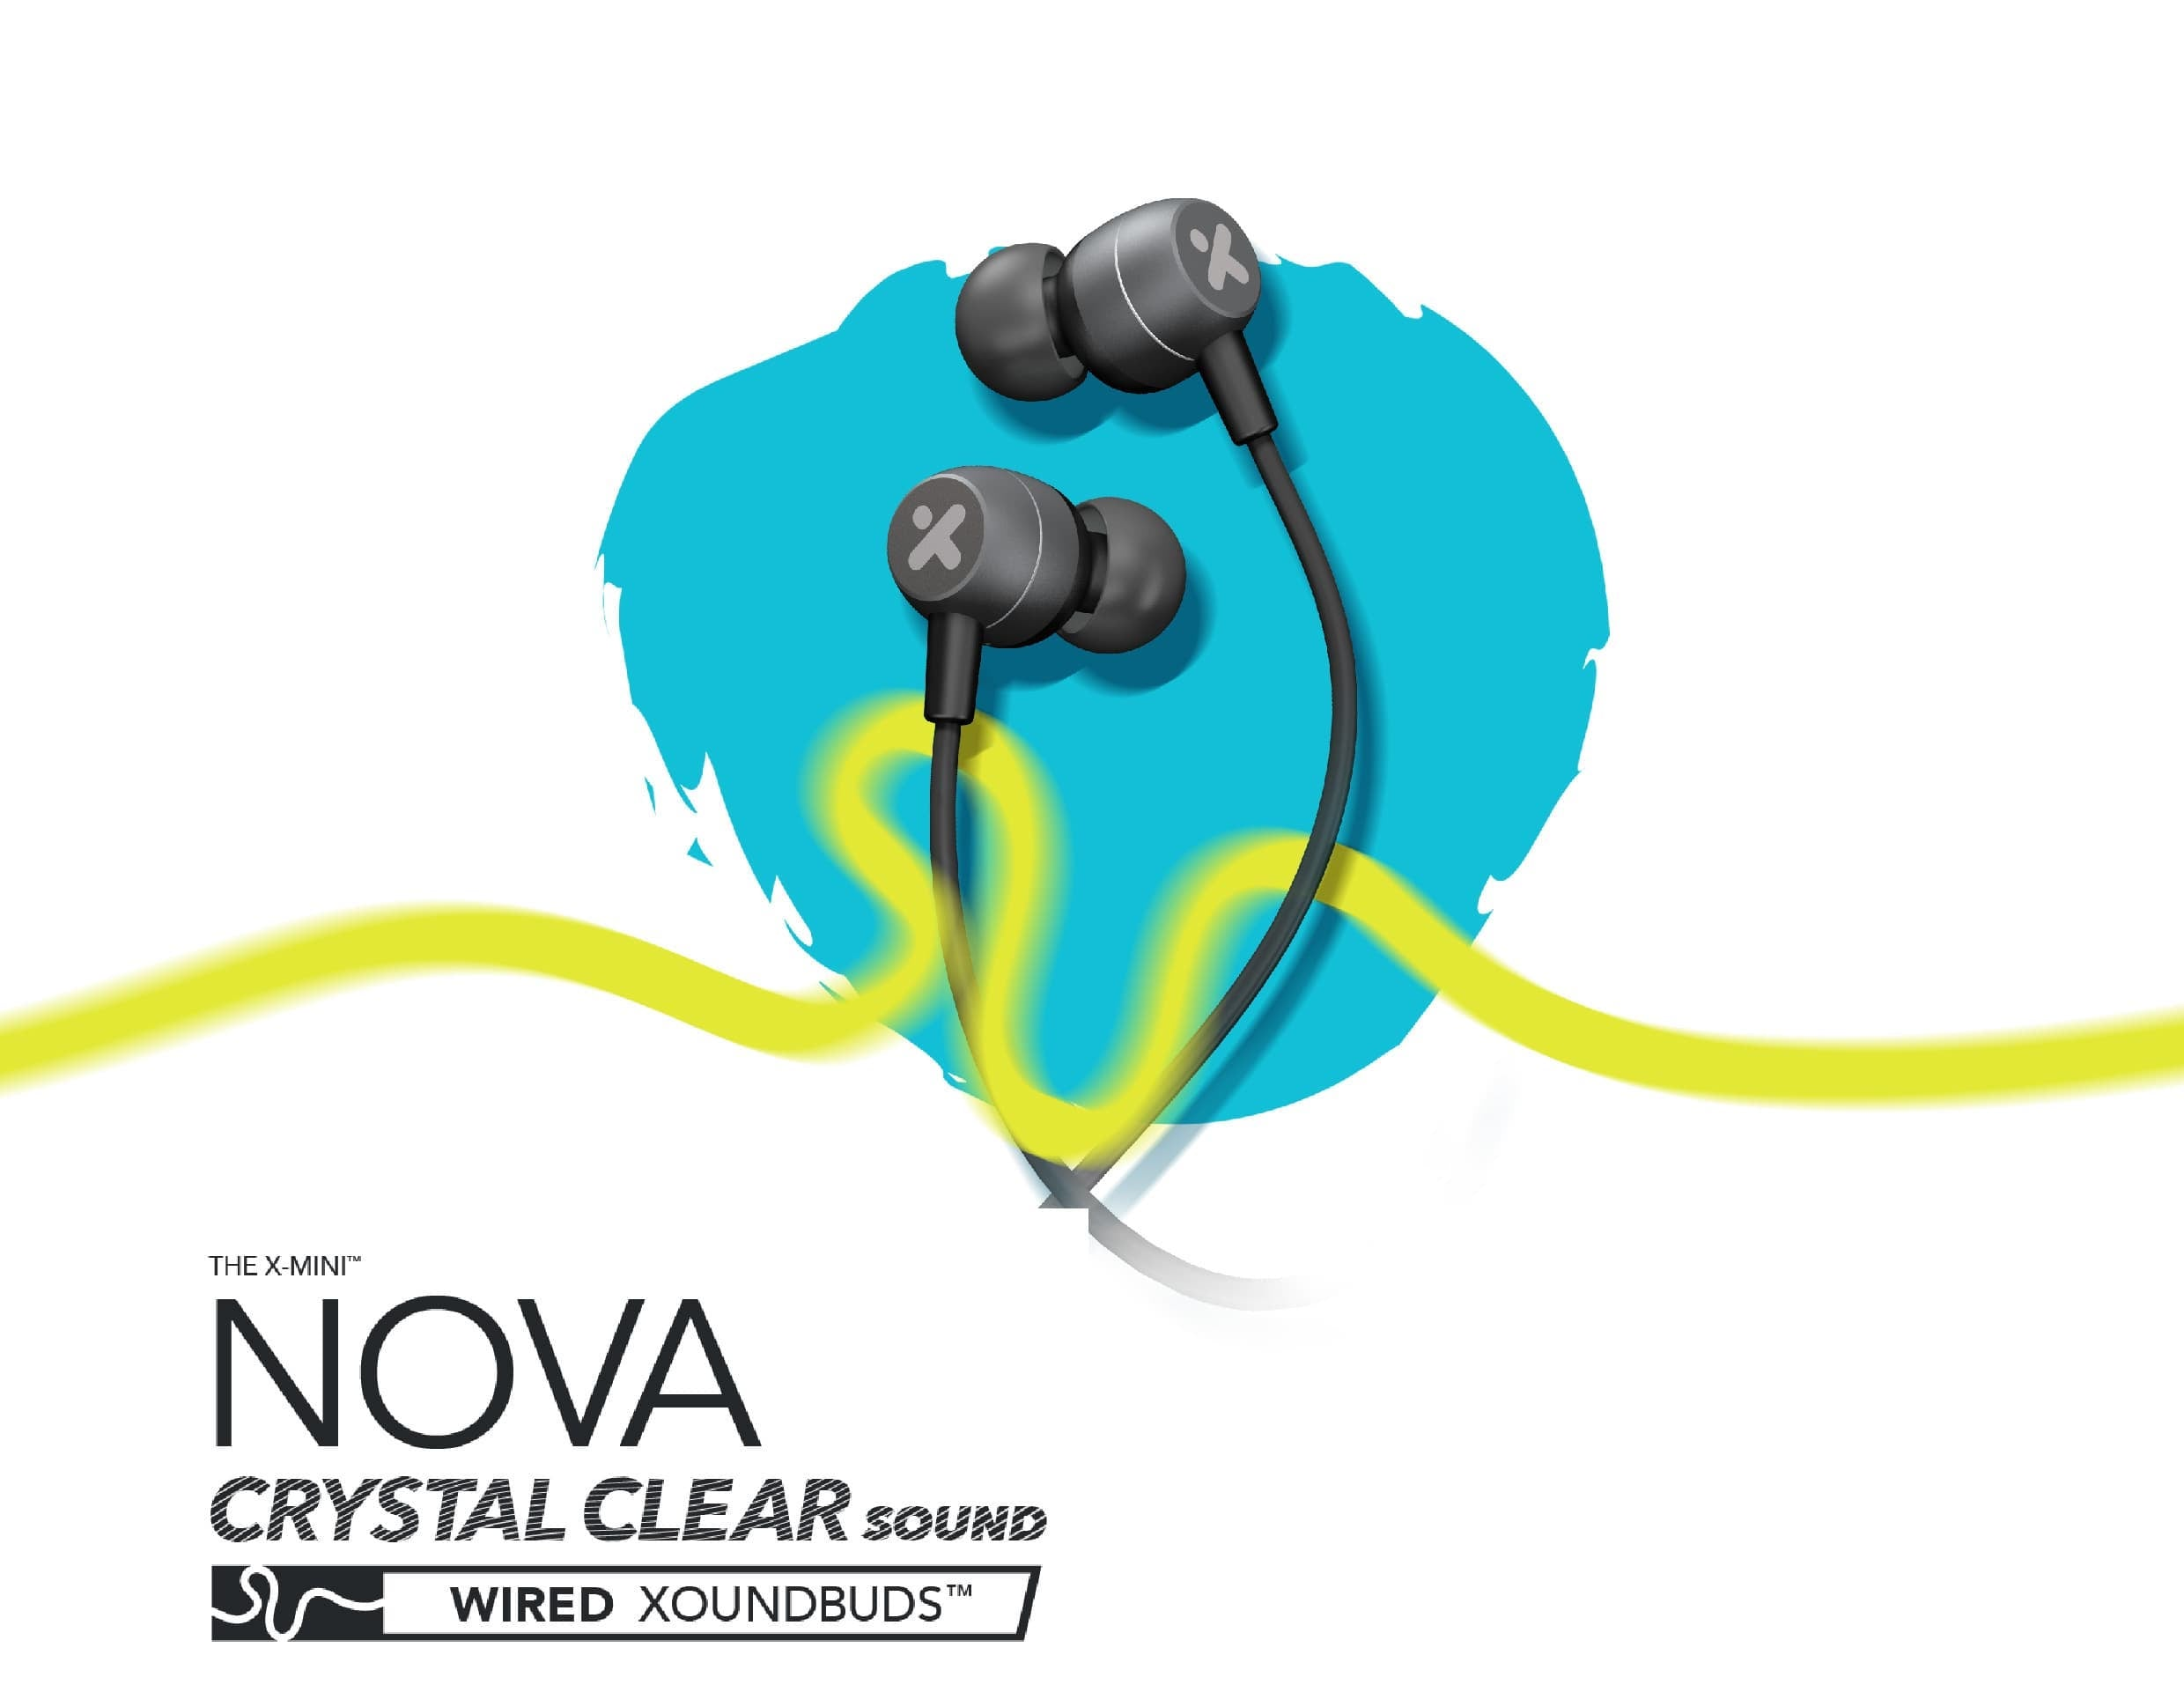 X-mini-Nova-Crystal-Clear-Sound-Wired-Xoundbuds